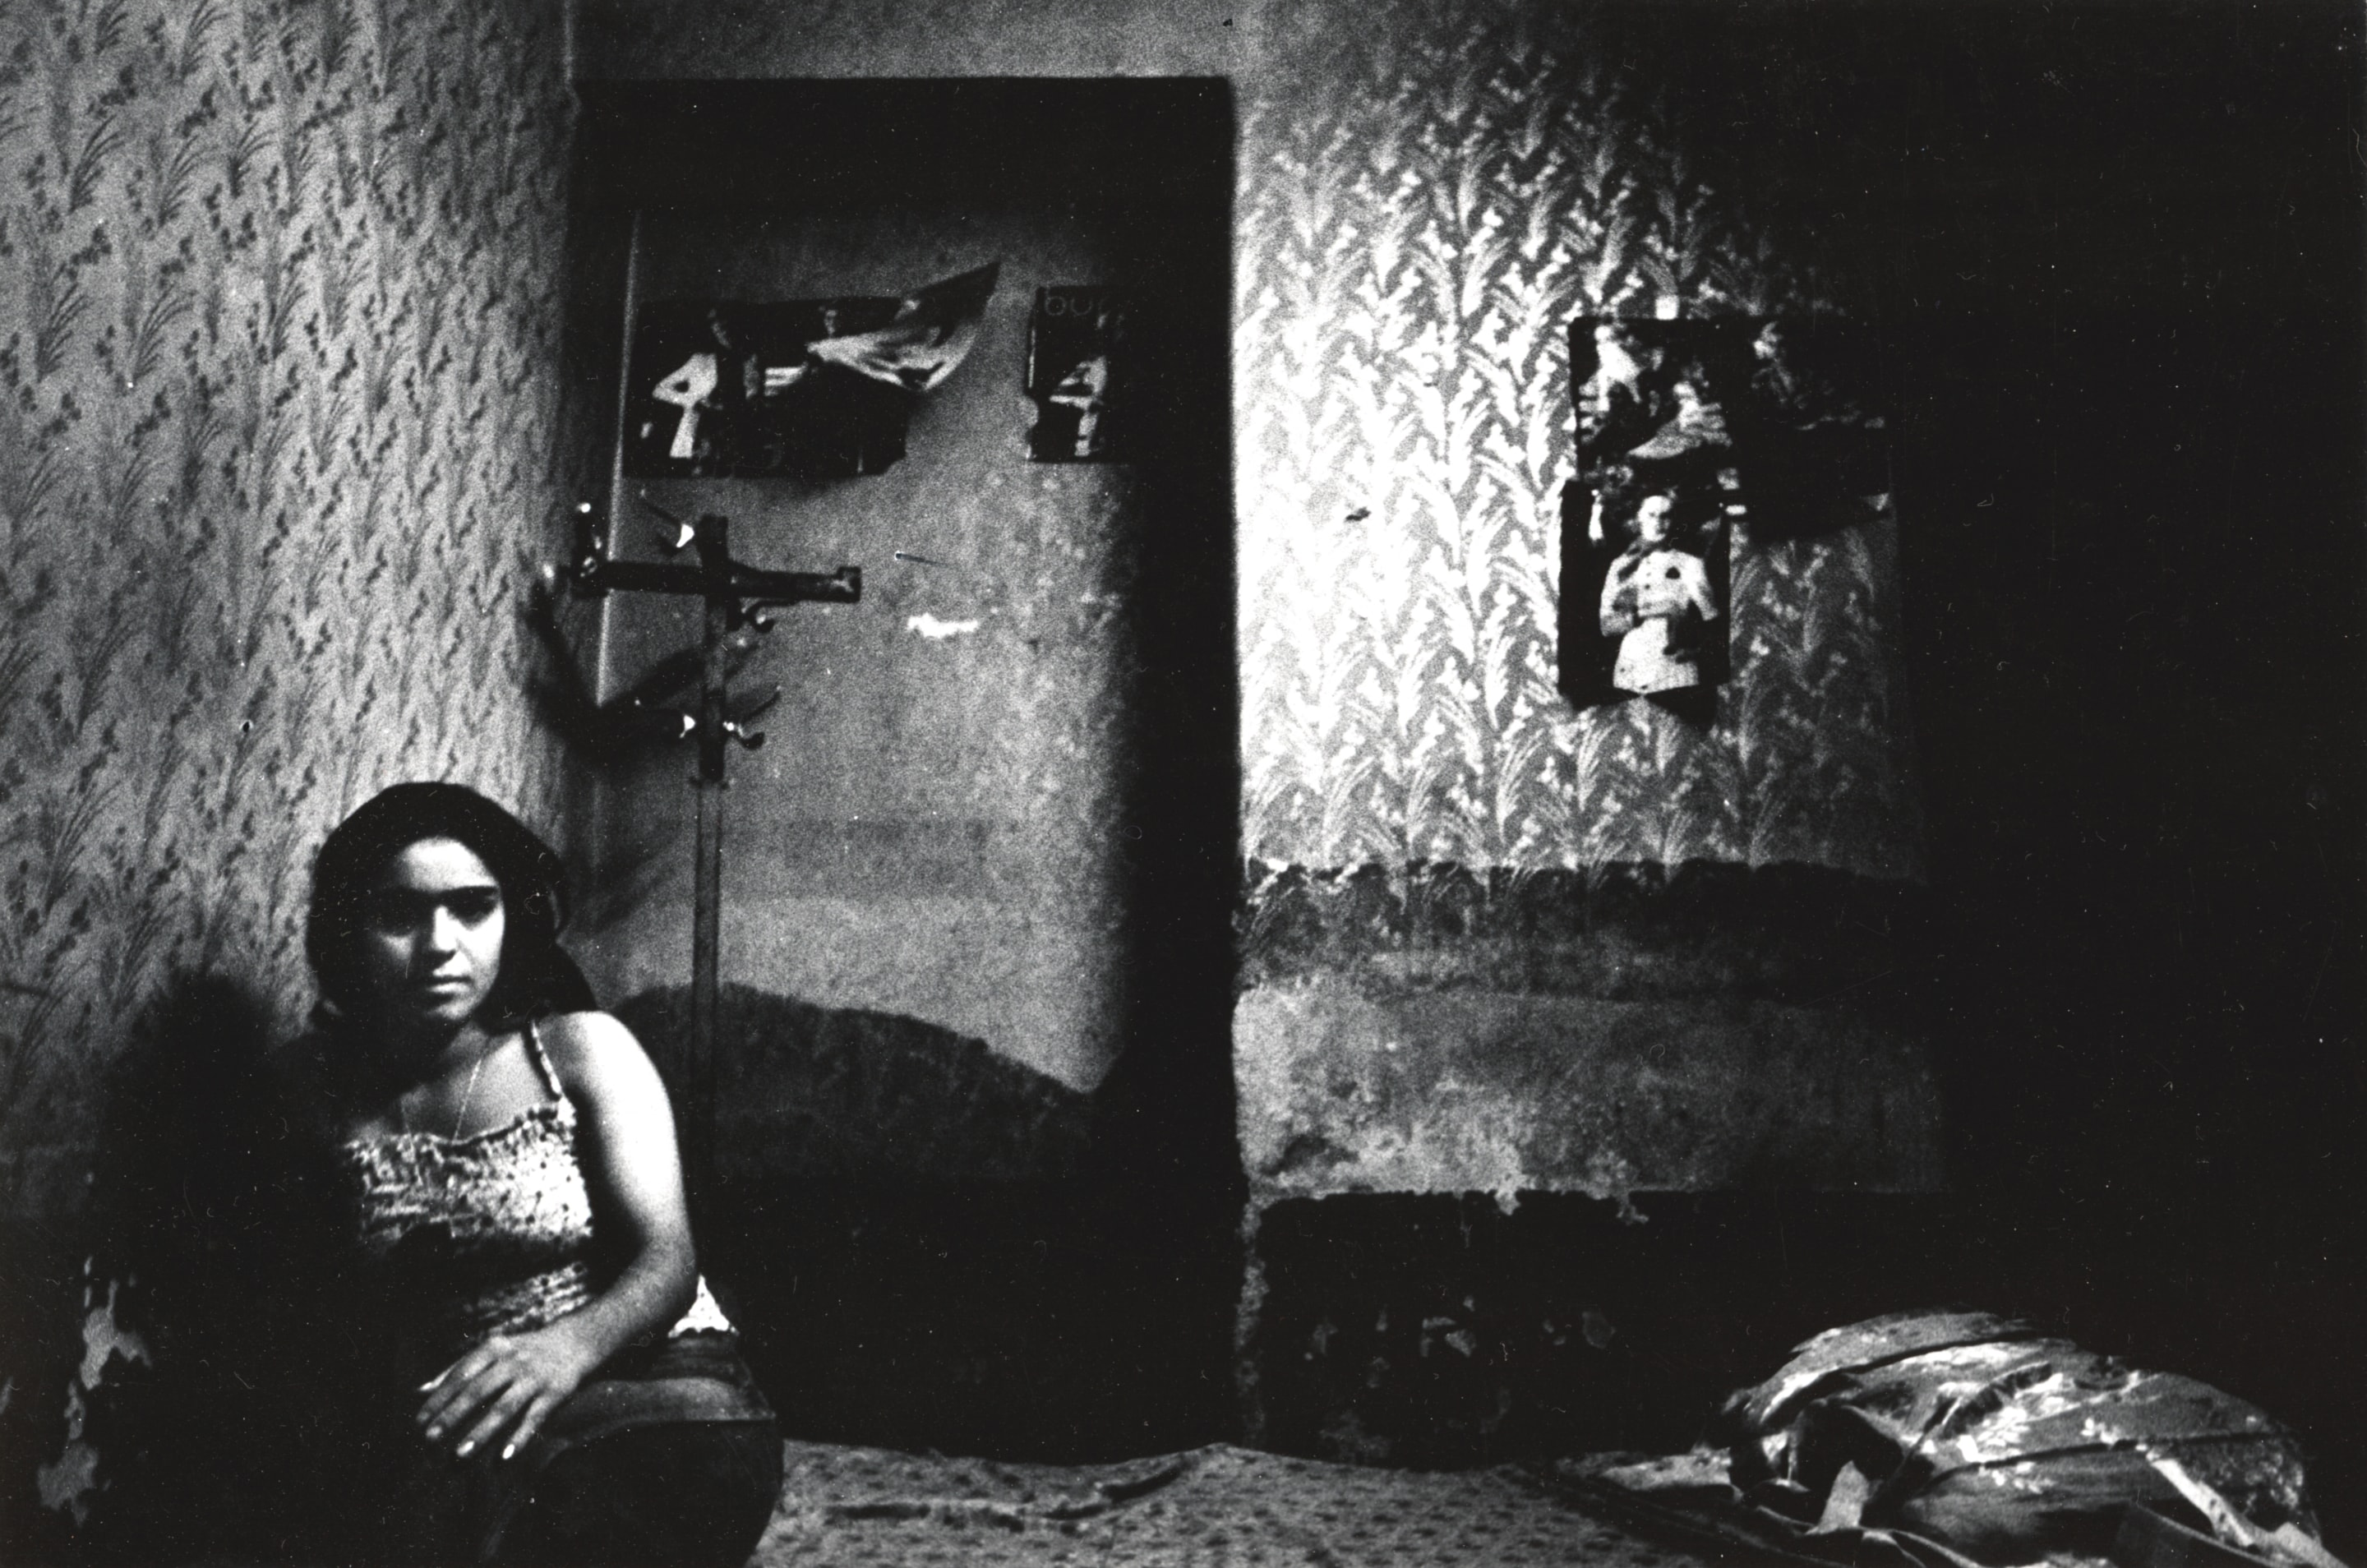 Kaveh Golestan Untitled Prostitute Series 1975 77 5 Min